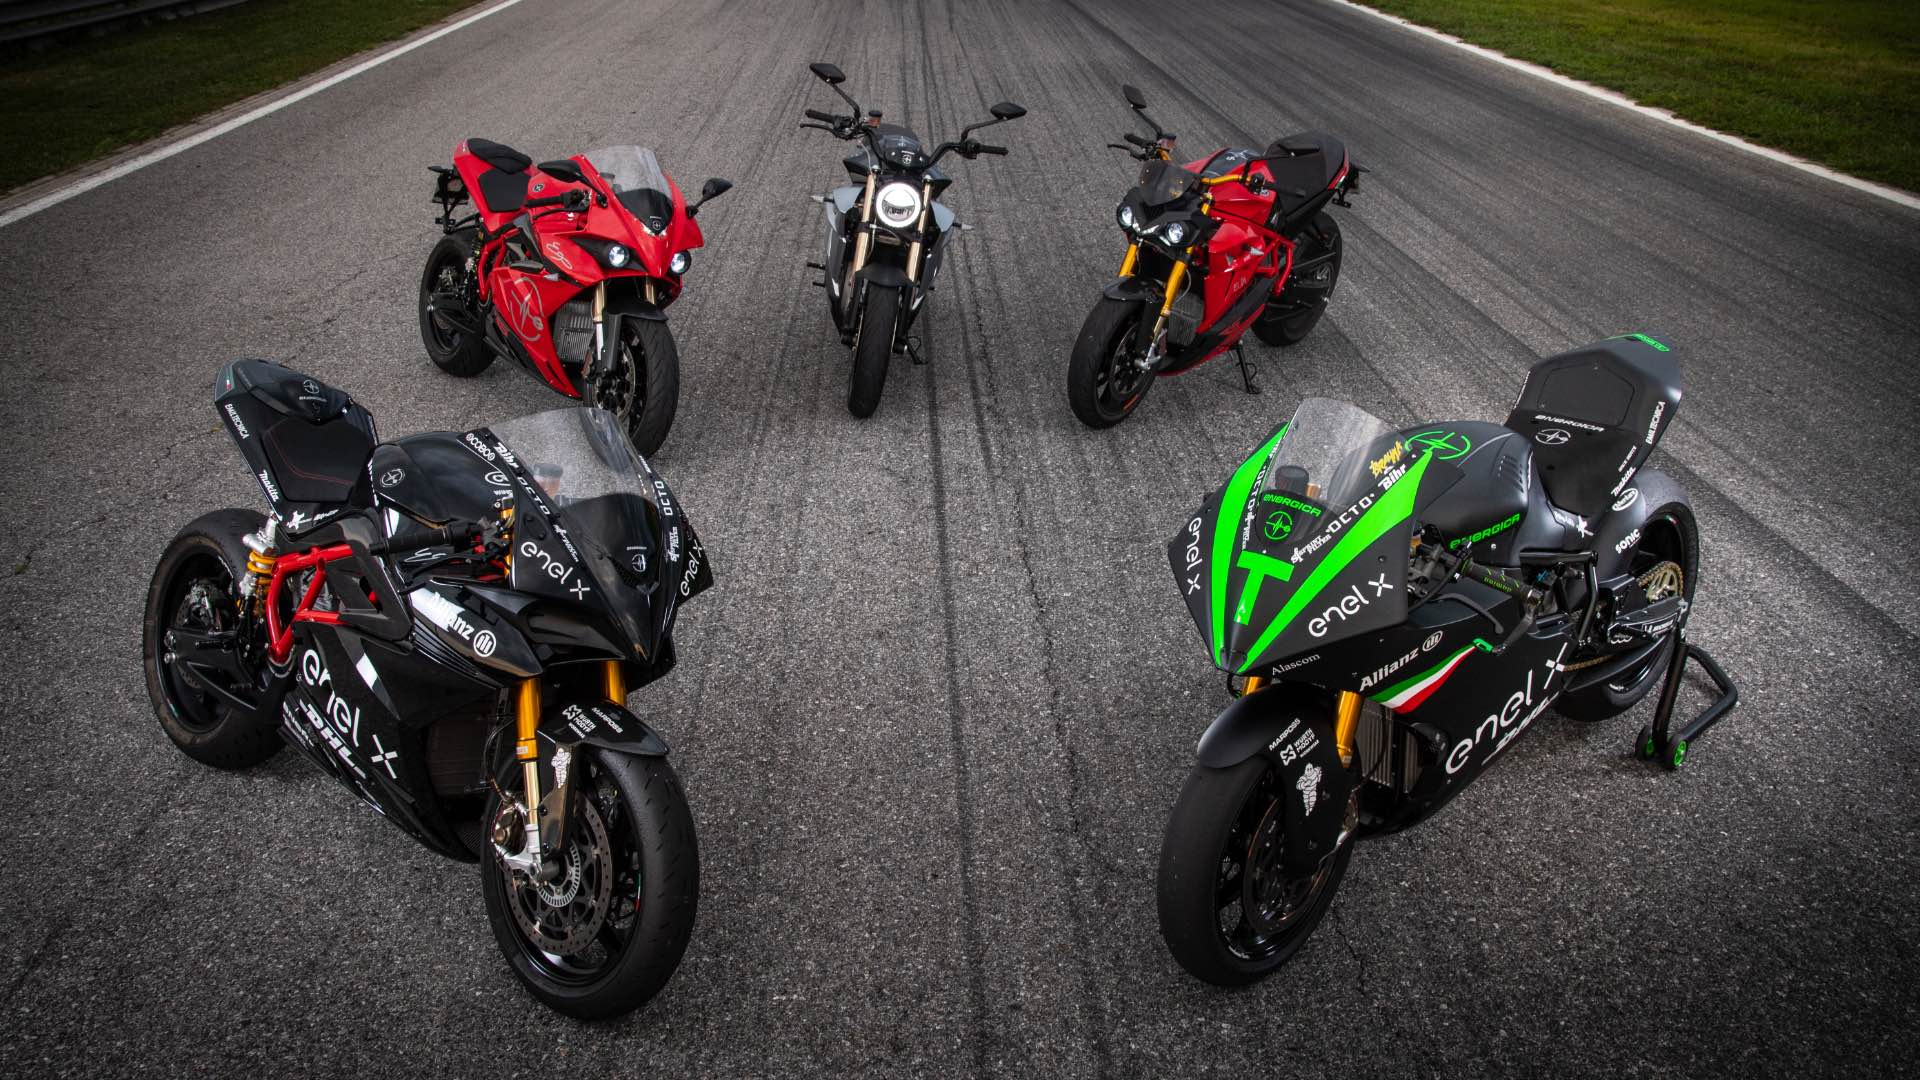 The Motor Valley never stops growing. Welcome on board Energica Motor Company.